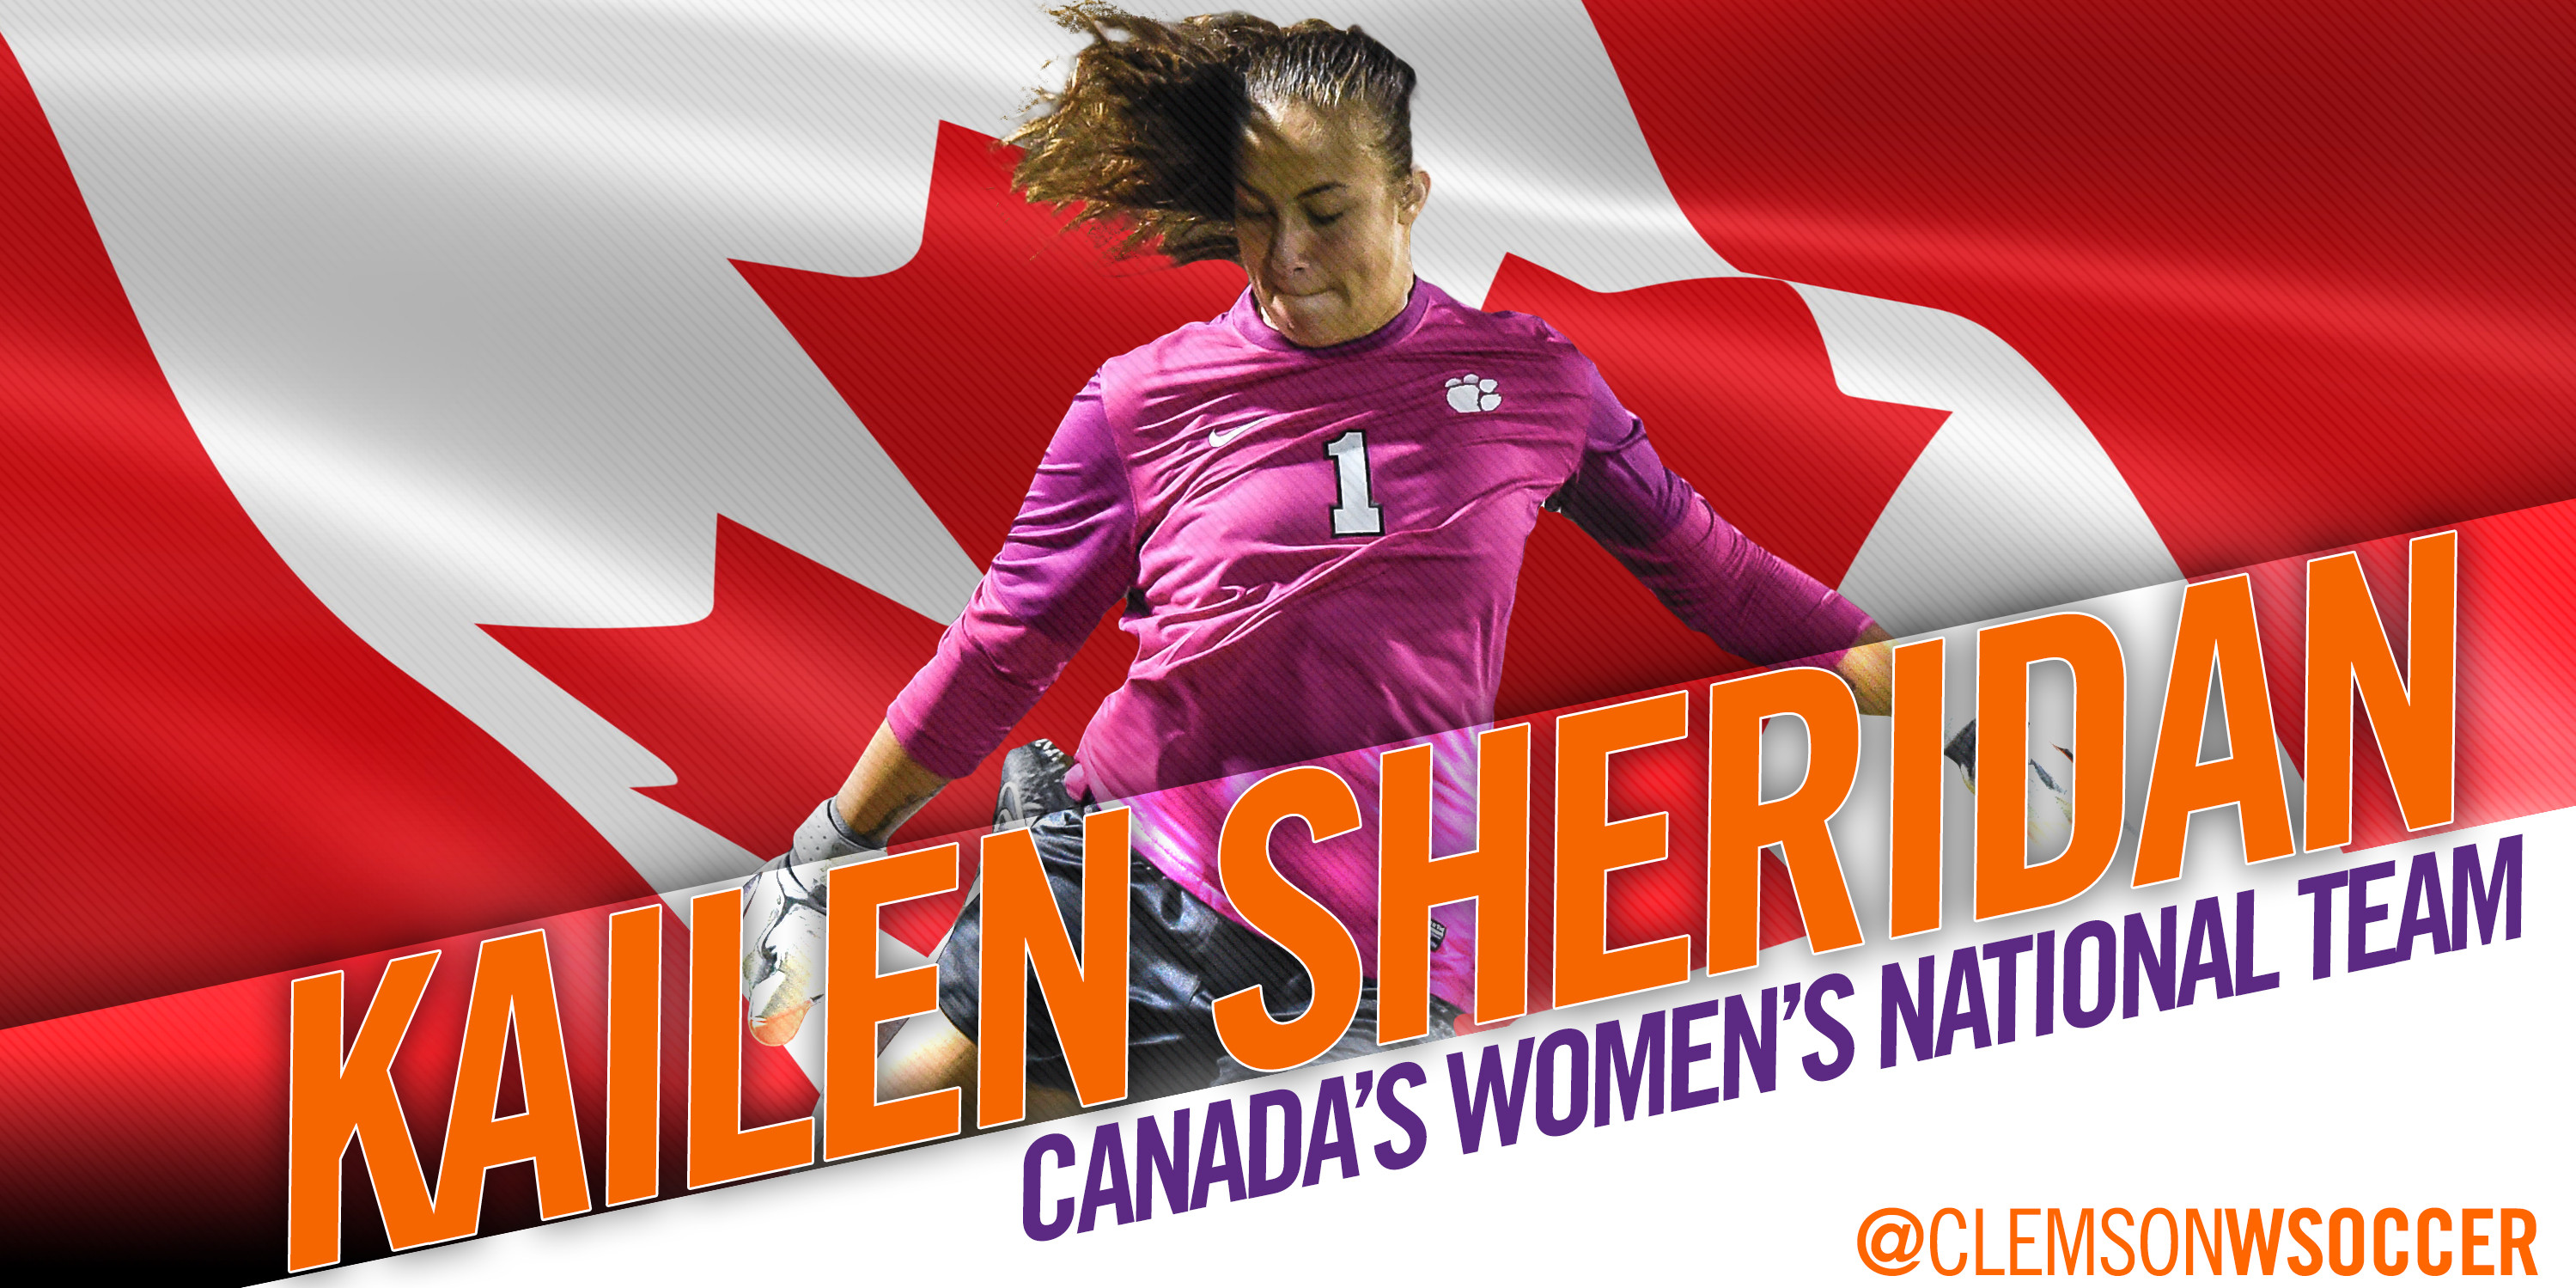 Sheridan joins National Team